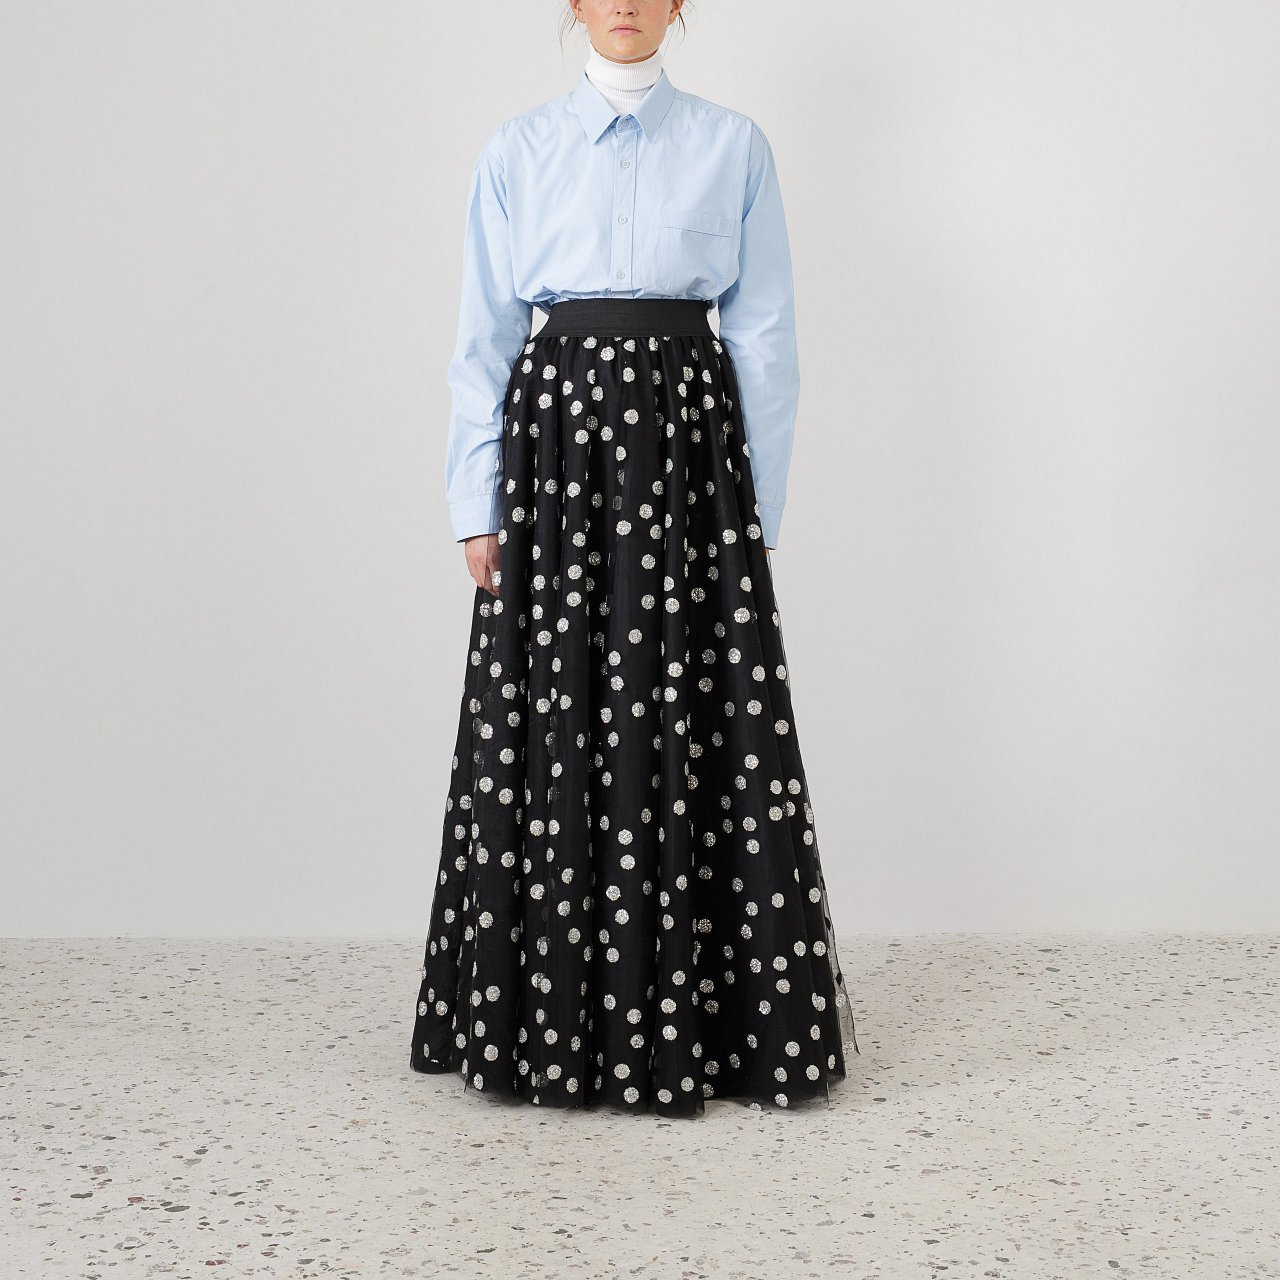 Product preview: Tulle Tutu Skirt Black Glitter Polka Maxi